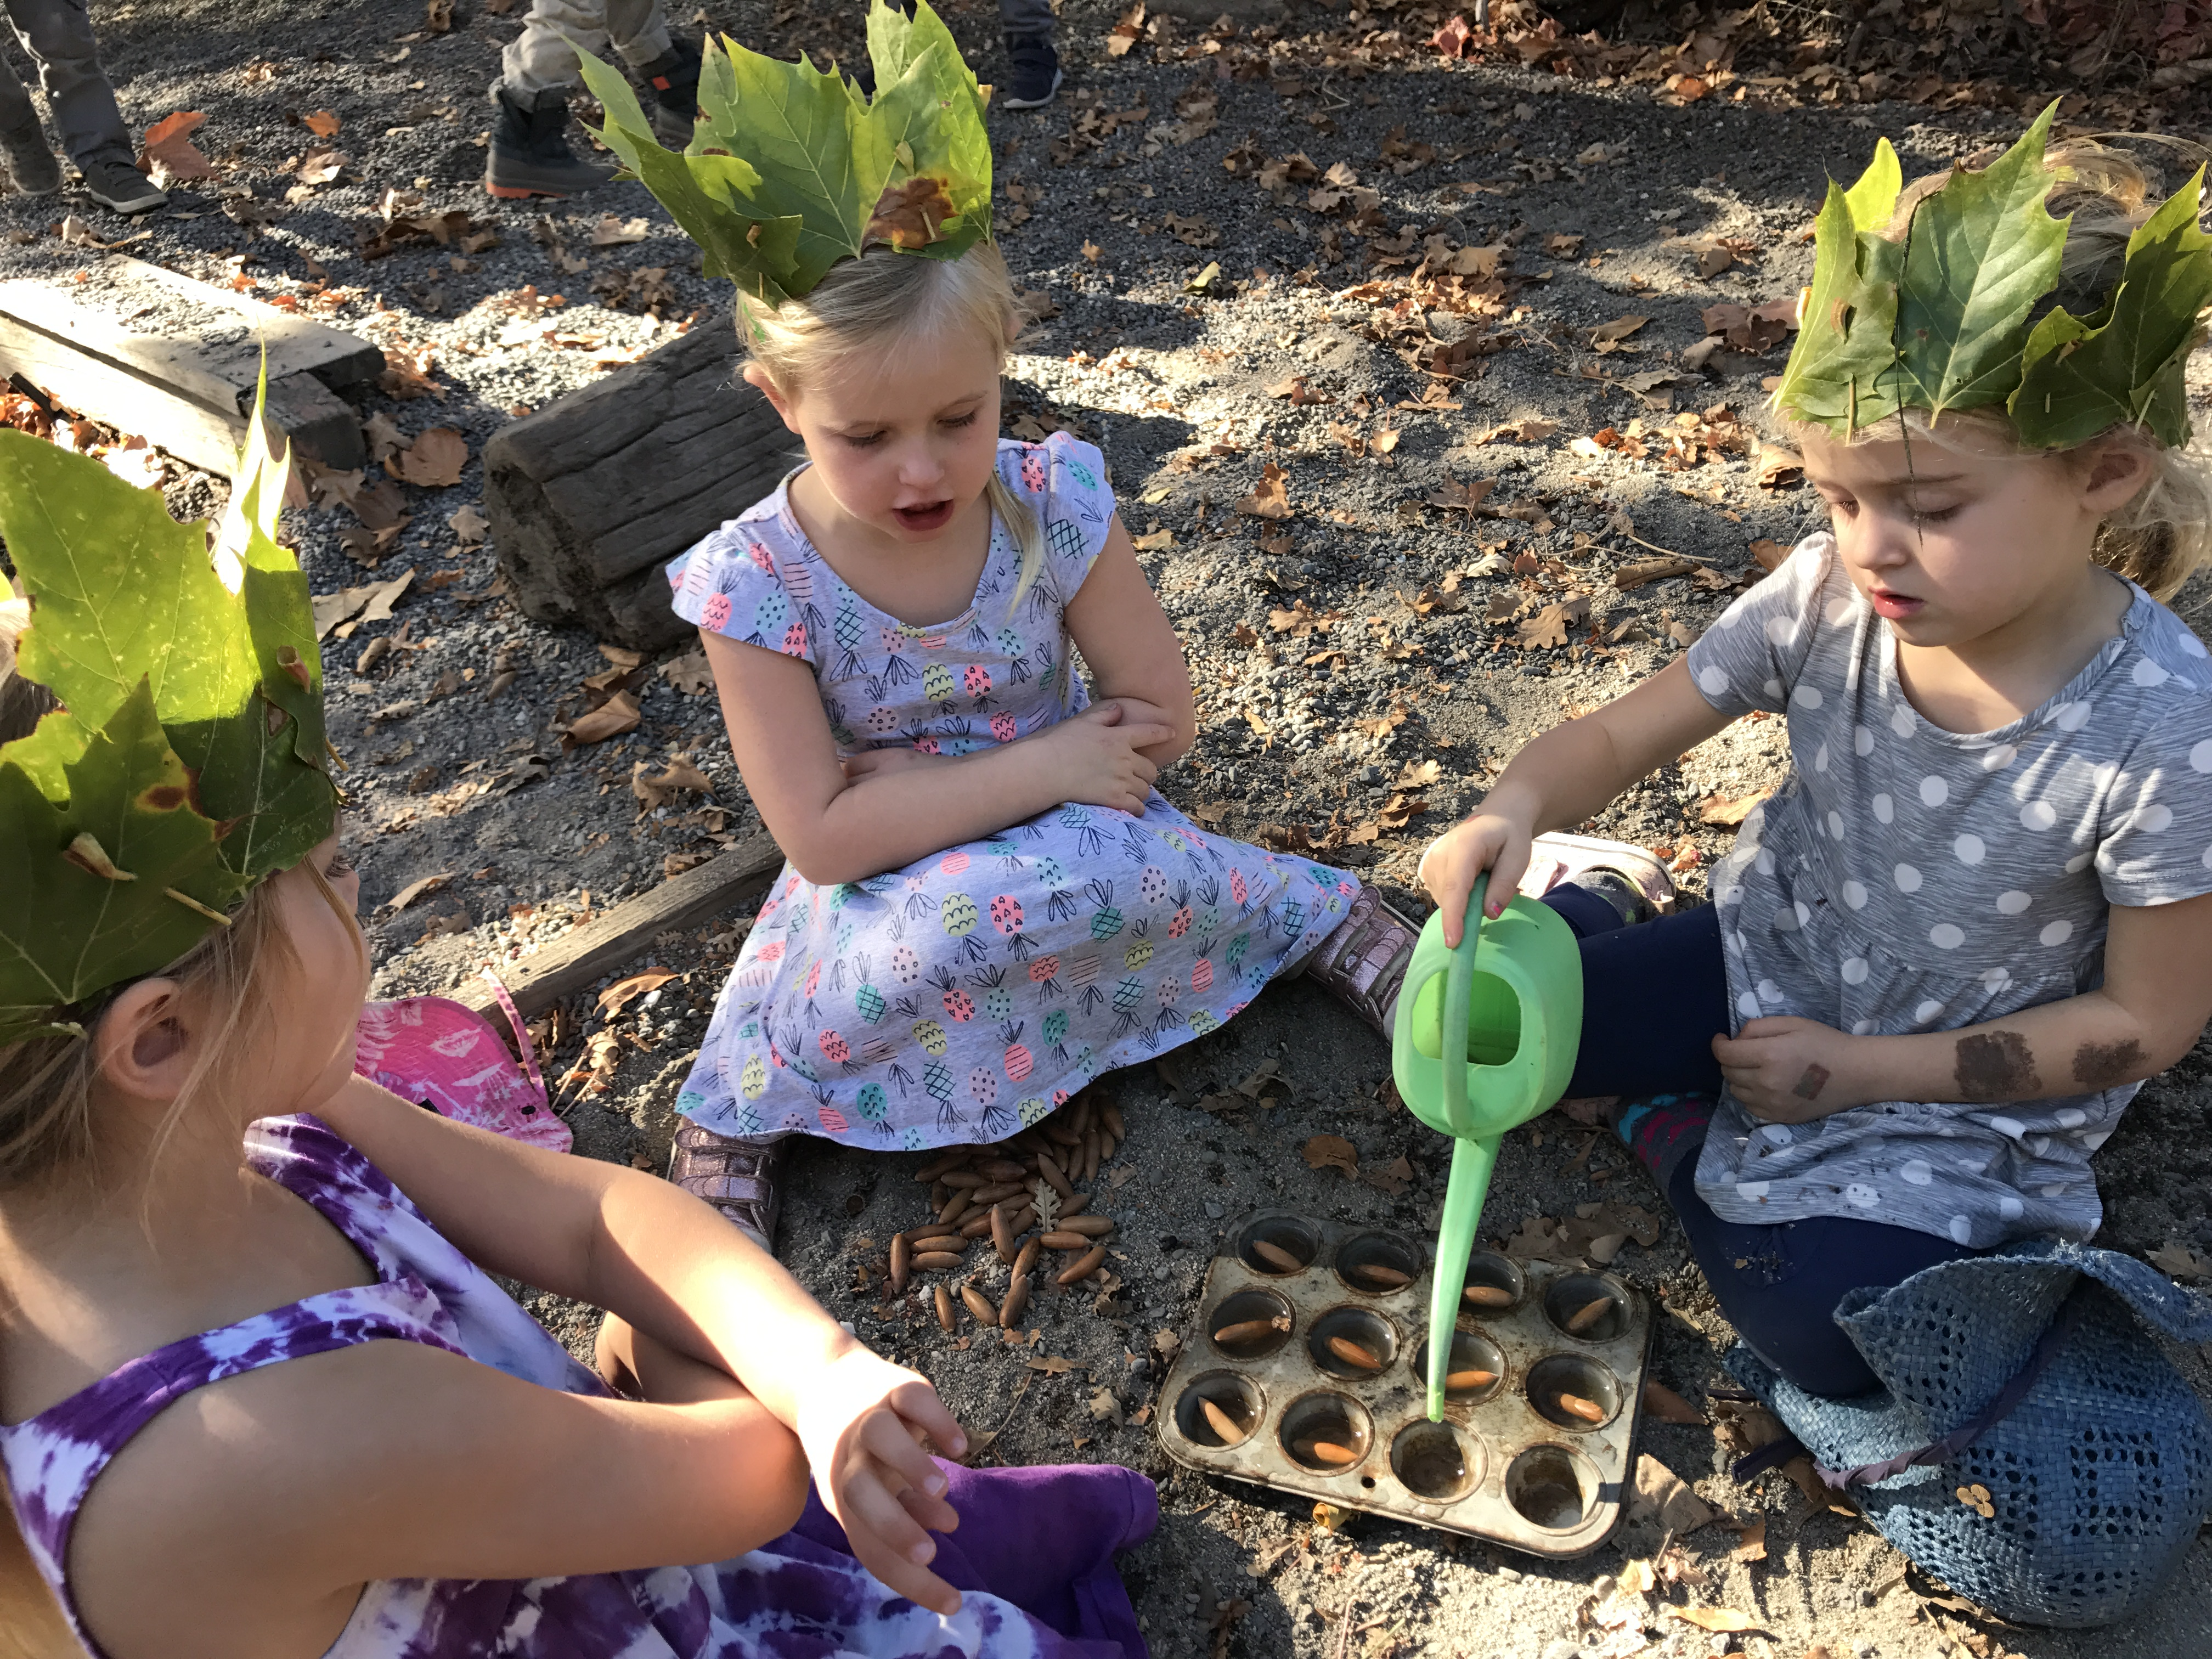 Outdoor imaginative play is fostered in our preschool